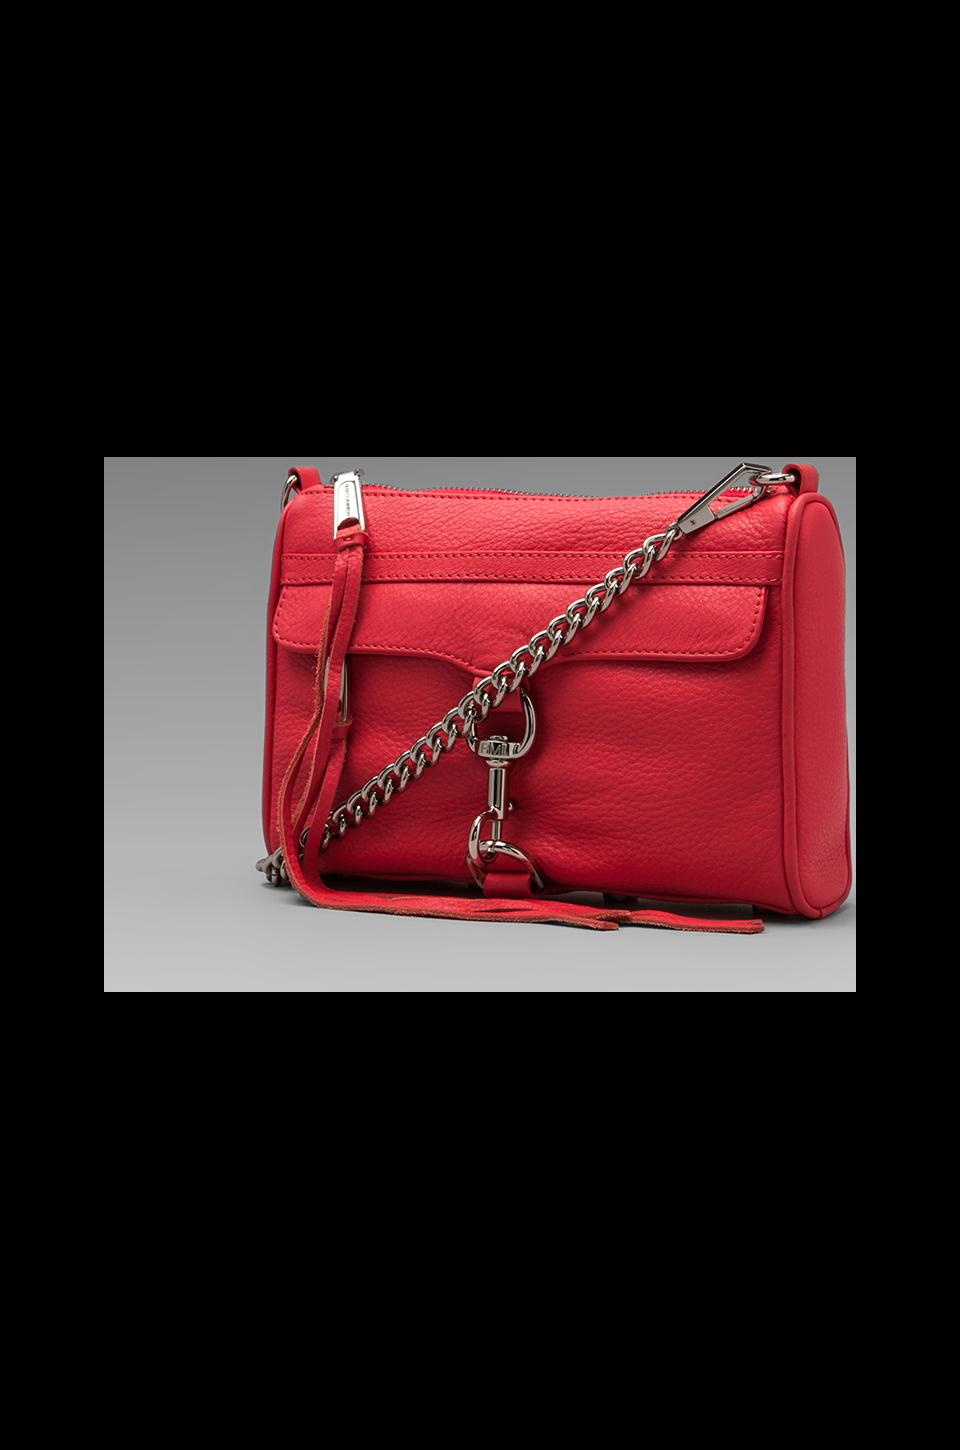 Rebecca Minkoff Mini MAC Clutch in Berry